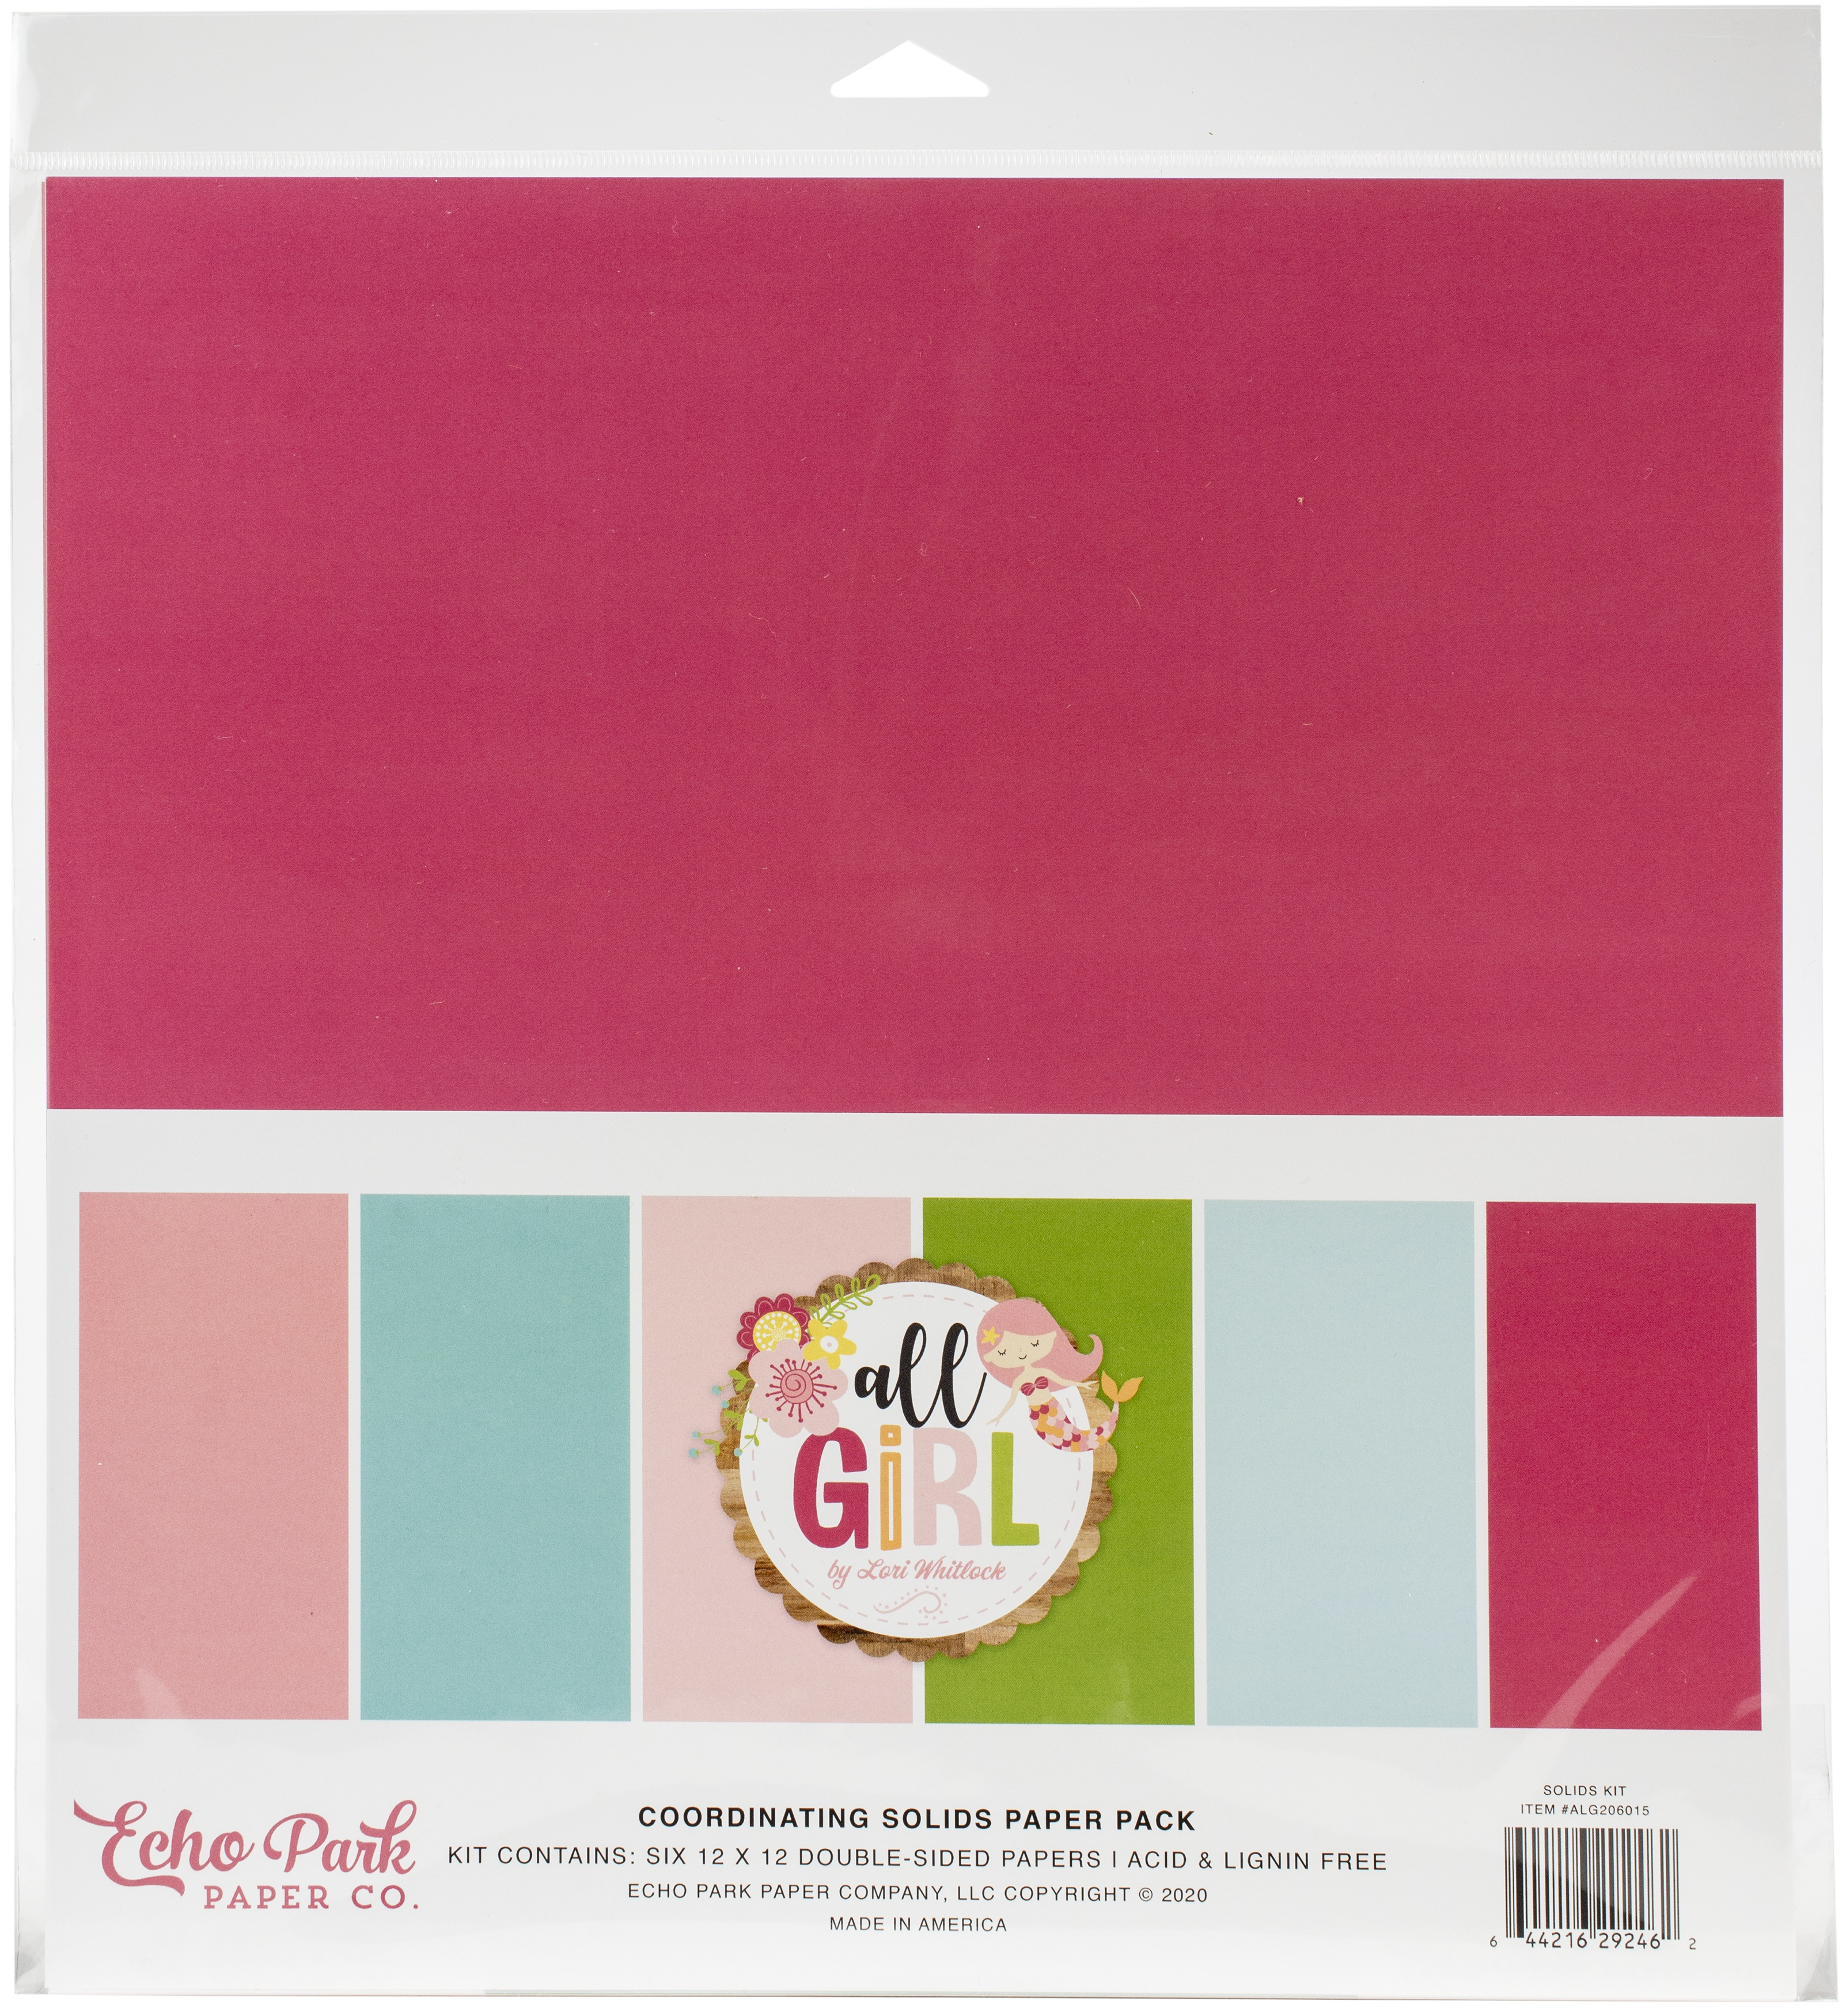 All Girl - Solids Paper Pack 12x12